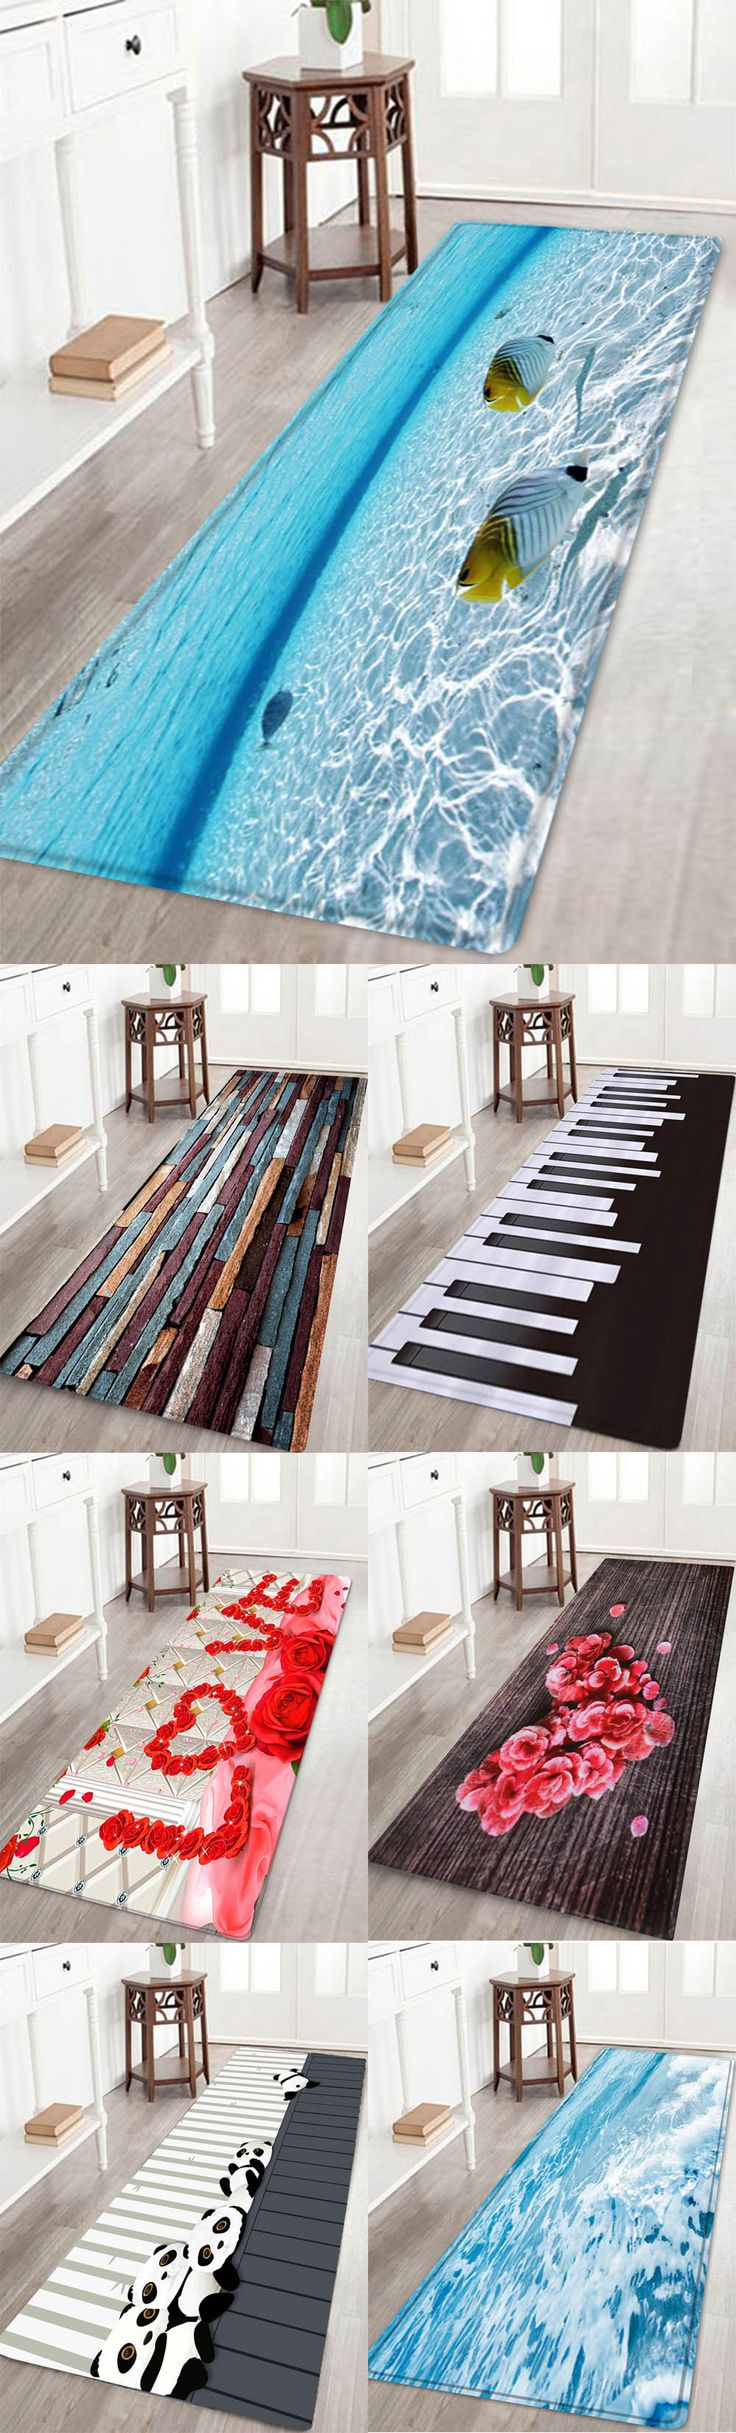 Up to 80% off,Rosewholesale Water Absorption Area Rug | Rosewholesale,rosewholesale.com,rosewholesale home,rosewhole decor,rosewholesale online store,rug,home decor,decoration,home decor diy,rosewholesale valentines day,valentines day breakfast,valentines day dinner,valentines day decor,home | #rosewholesale #homedecor #valentinesday #rugs